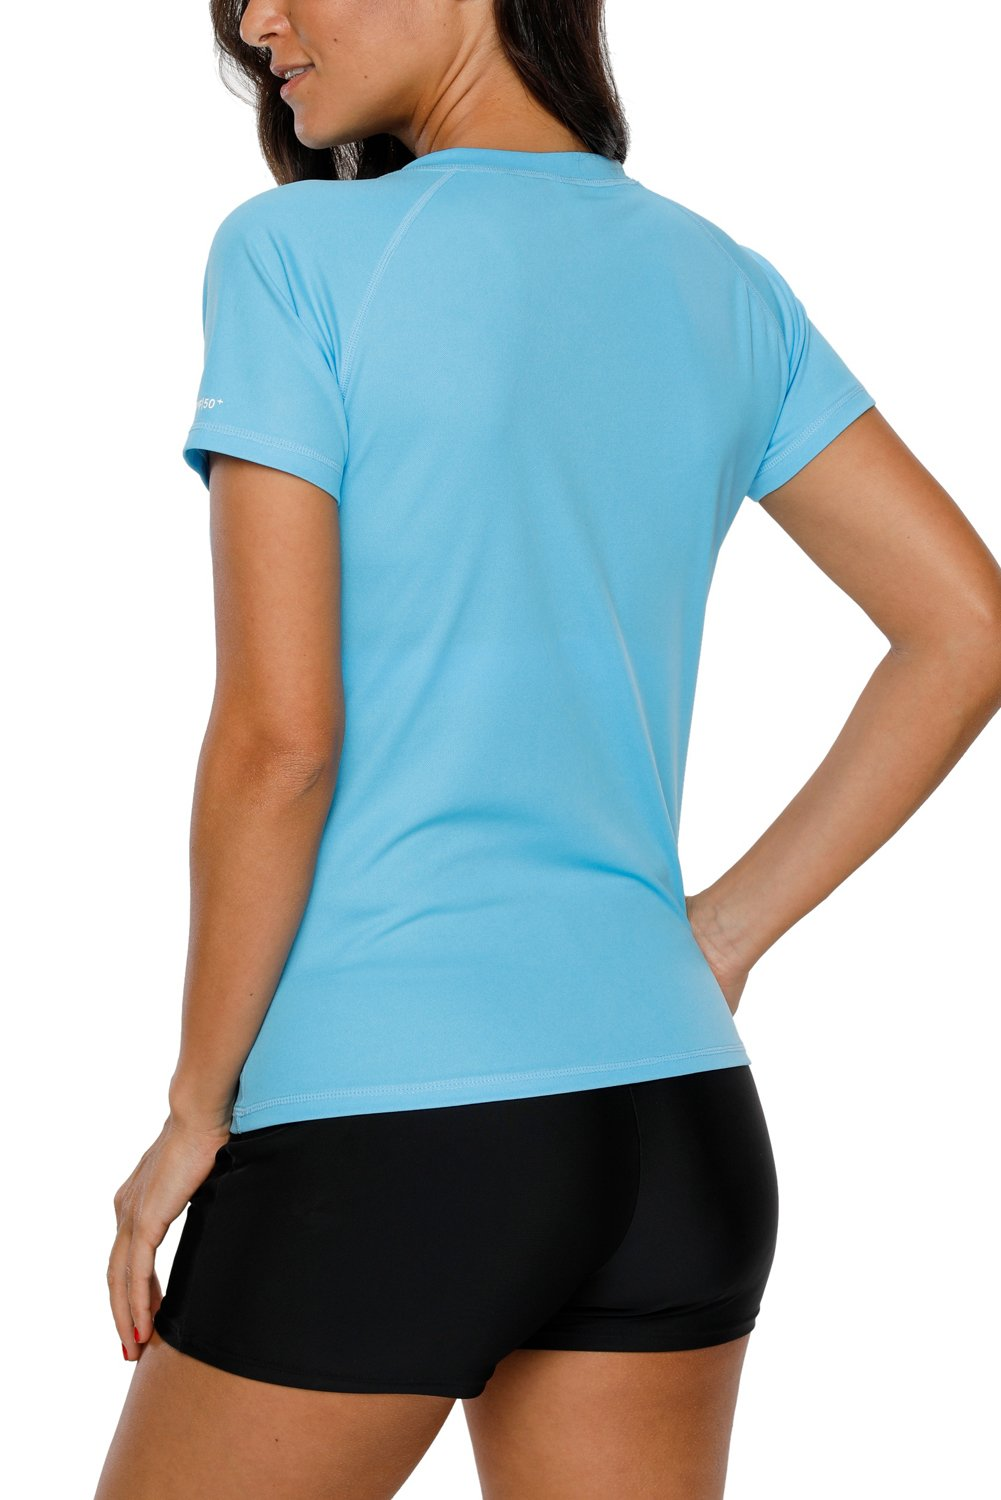 Vegatos Women's Short Sleeve Athletic UV Swim Tee Bathing Suit Top Active Shirt by Vegatos (Image #3)